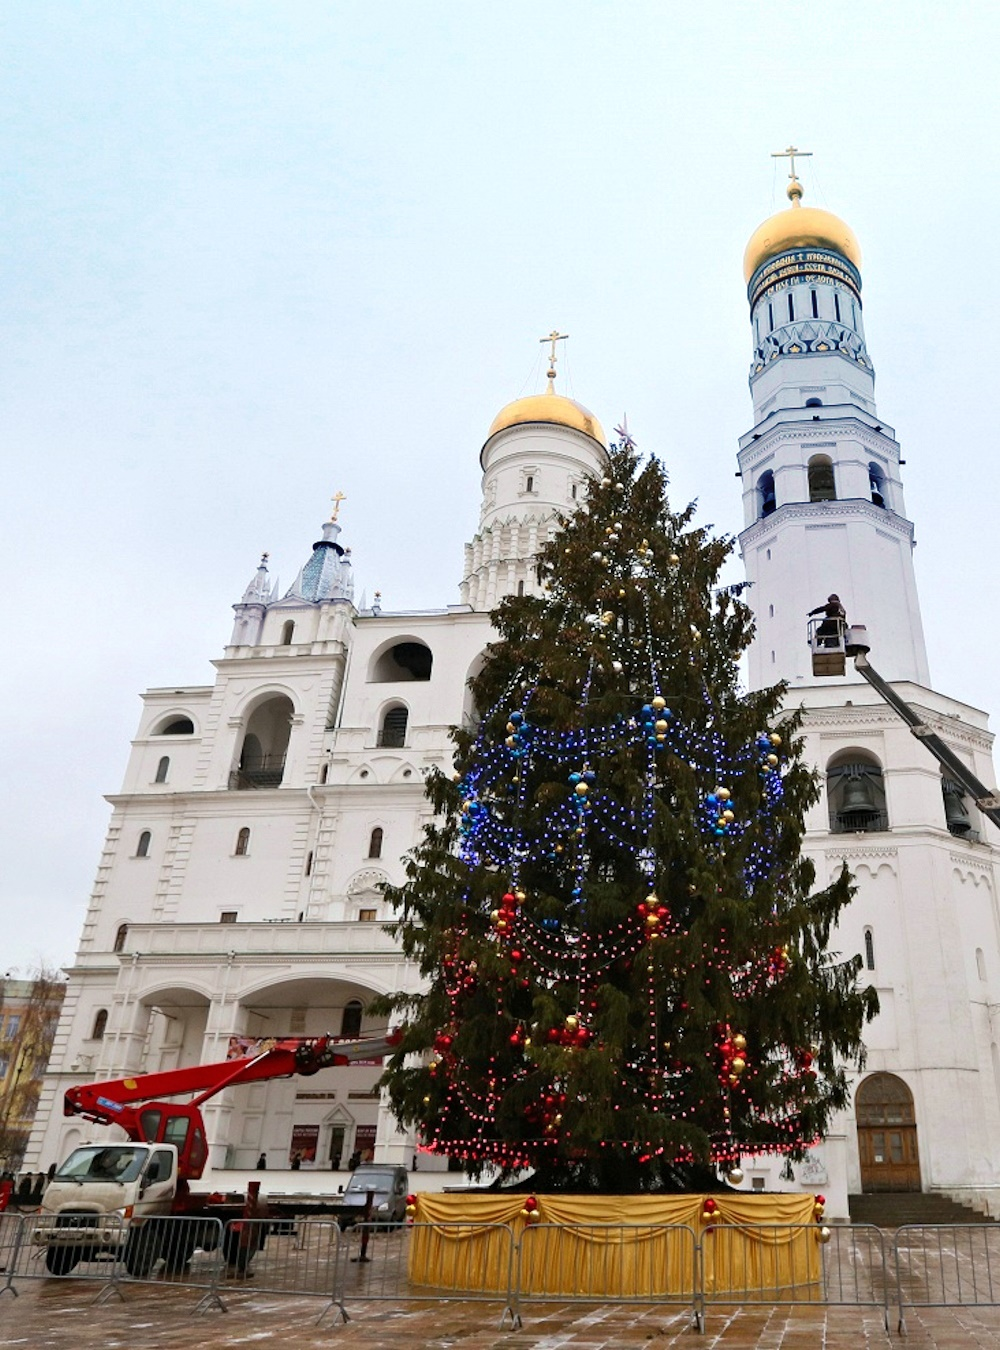 00 2015 New Year Tree Moscow RUSSIA 08. 25.12.14